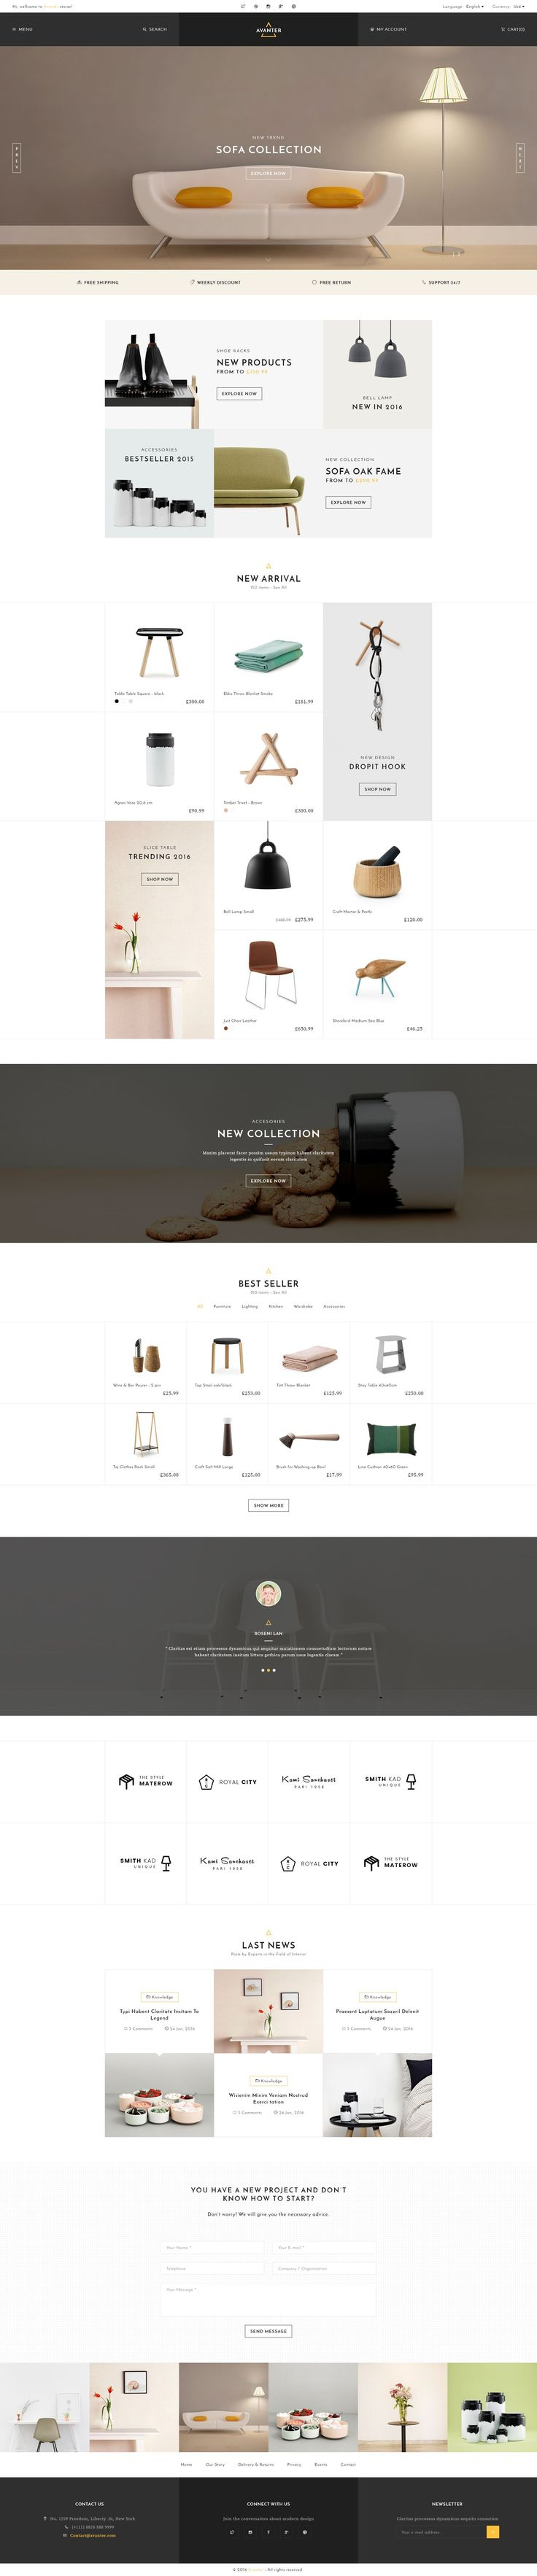 Avante is a form of modern and PSD is designed for #furniture #interiordesign stores. With a simple design style, clean very easy for the user. It's easy to customize this template for your purposes. #psdtemplate